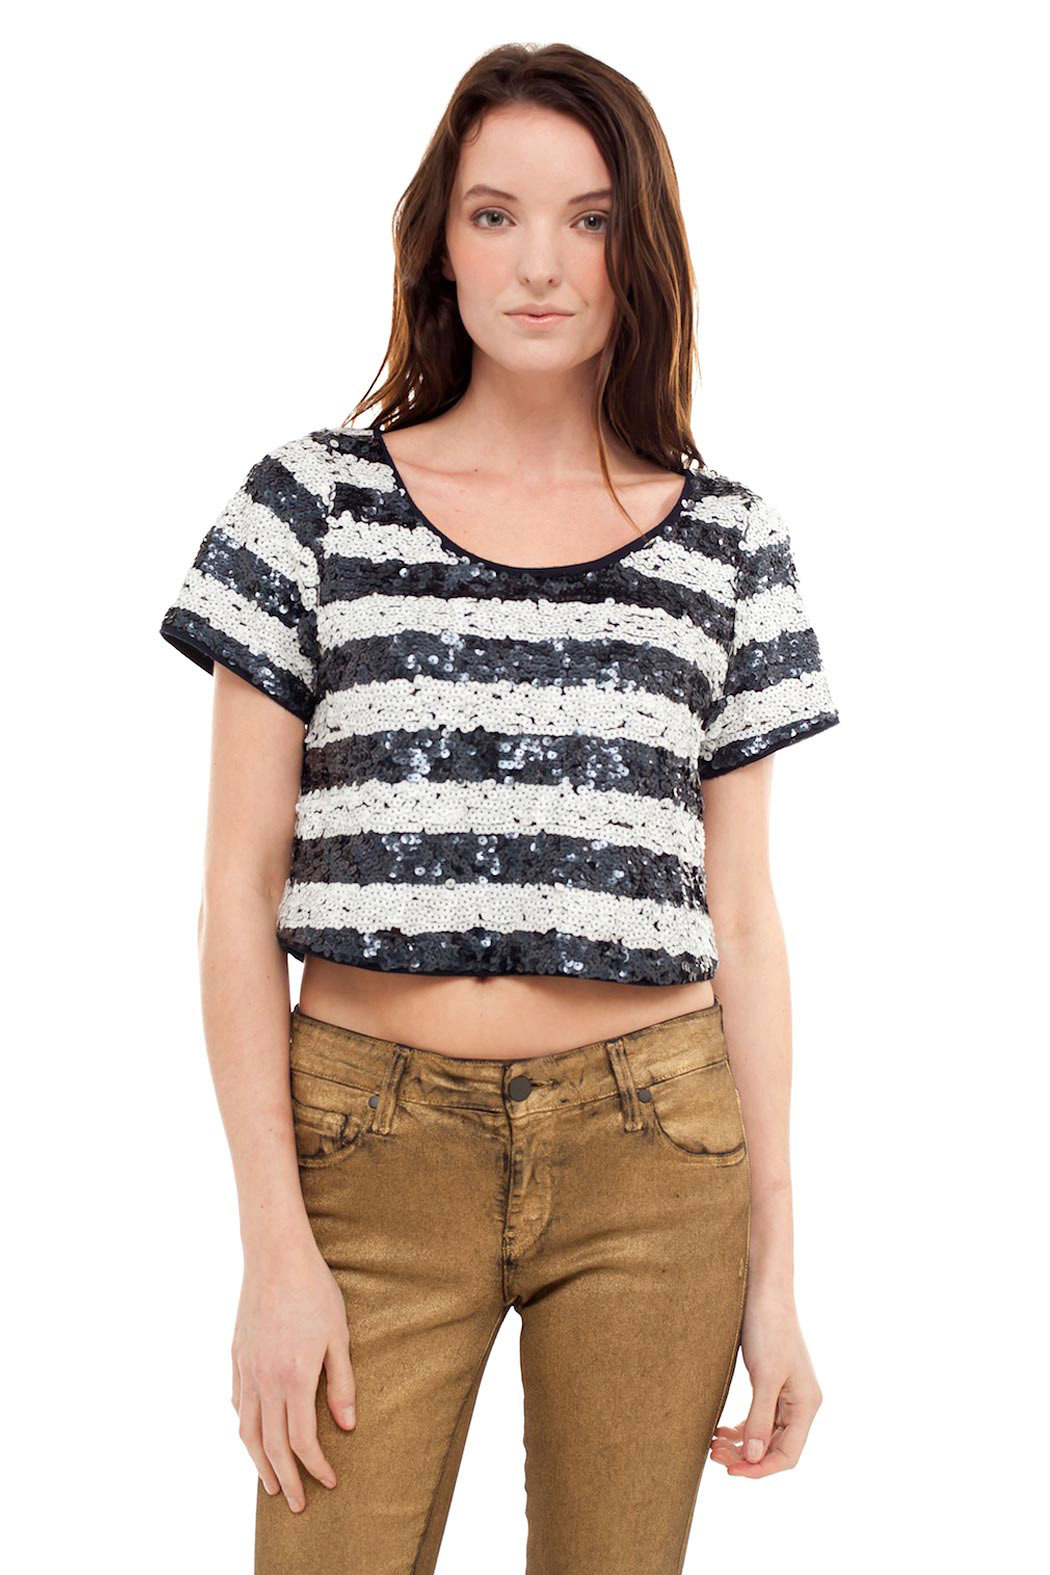 Ark & Co. Cropped Sequin Top - Main Image